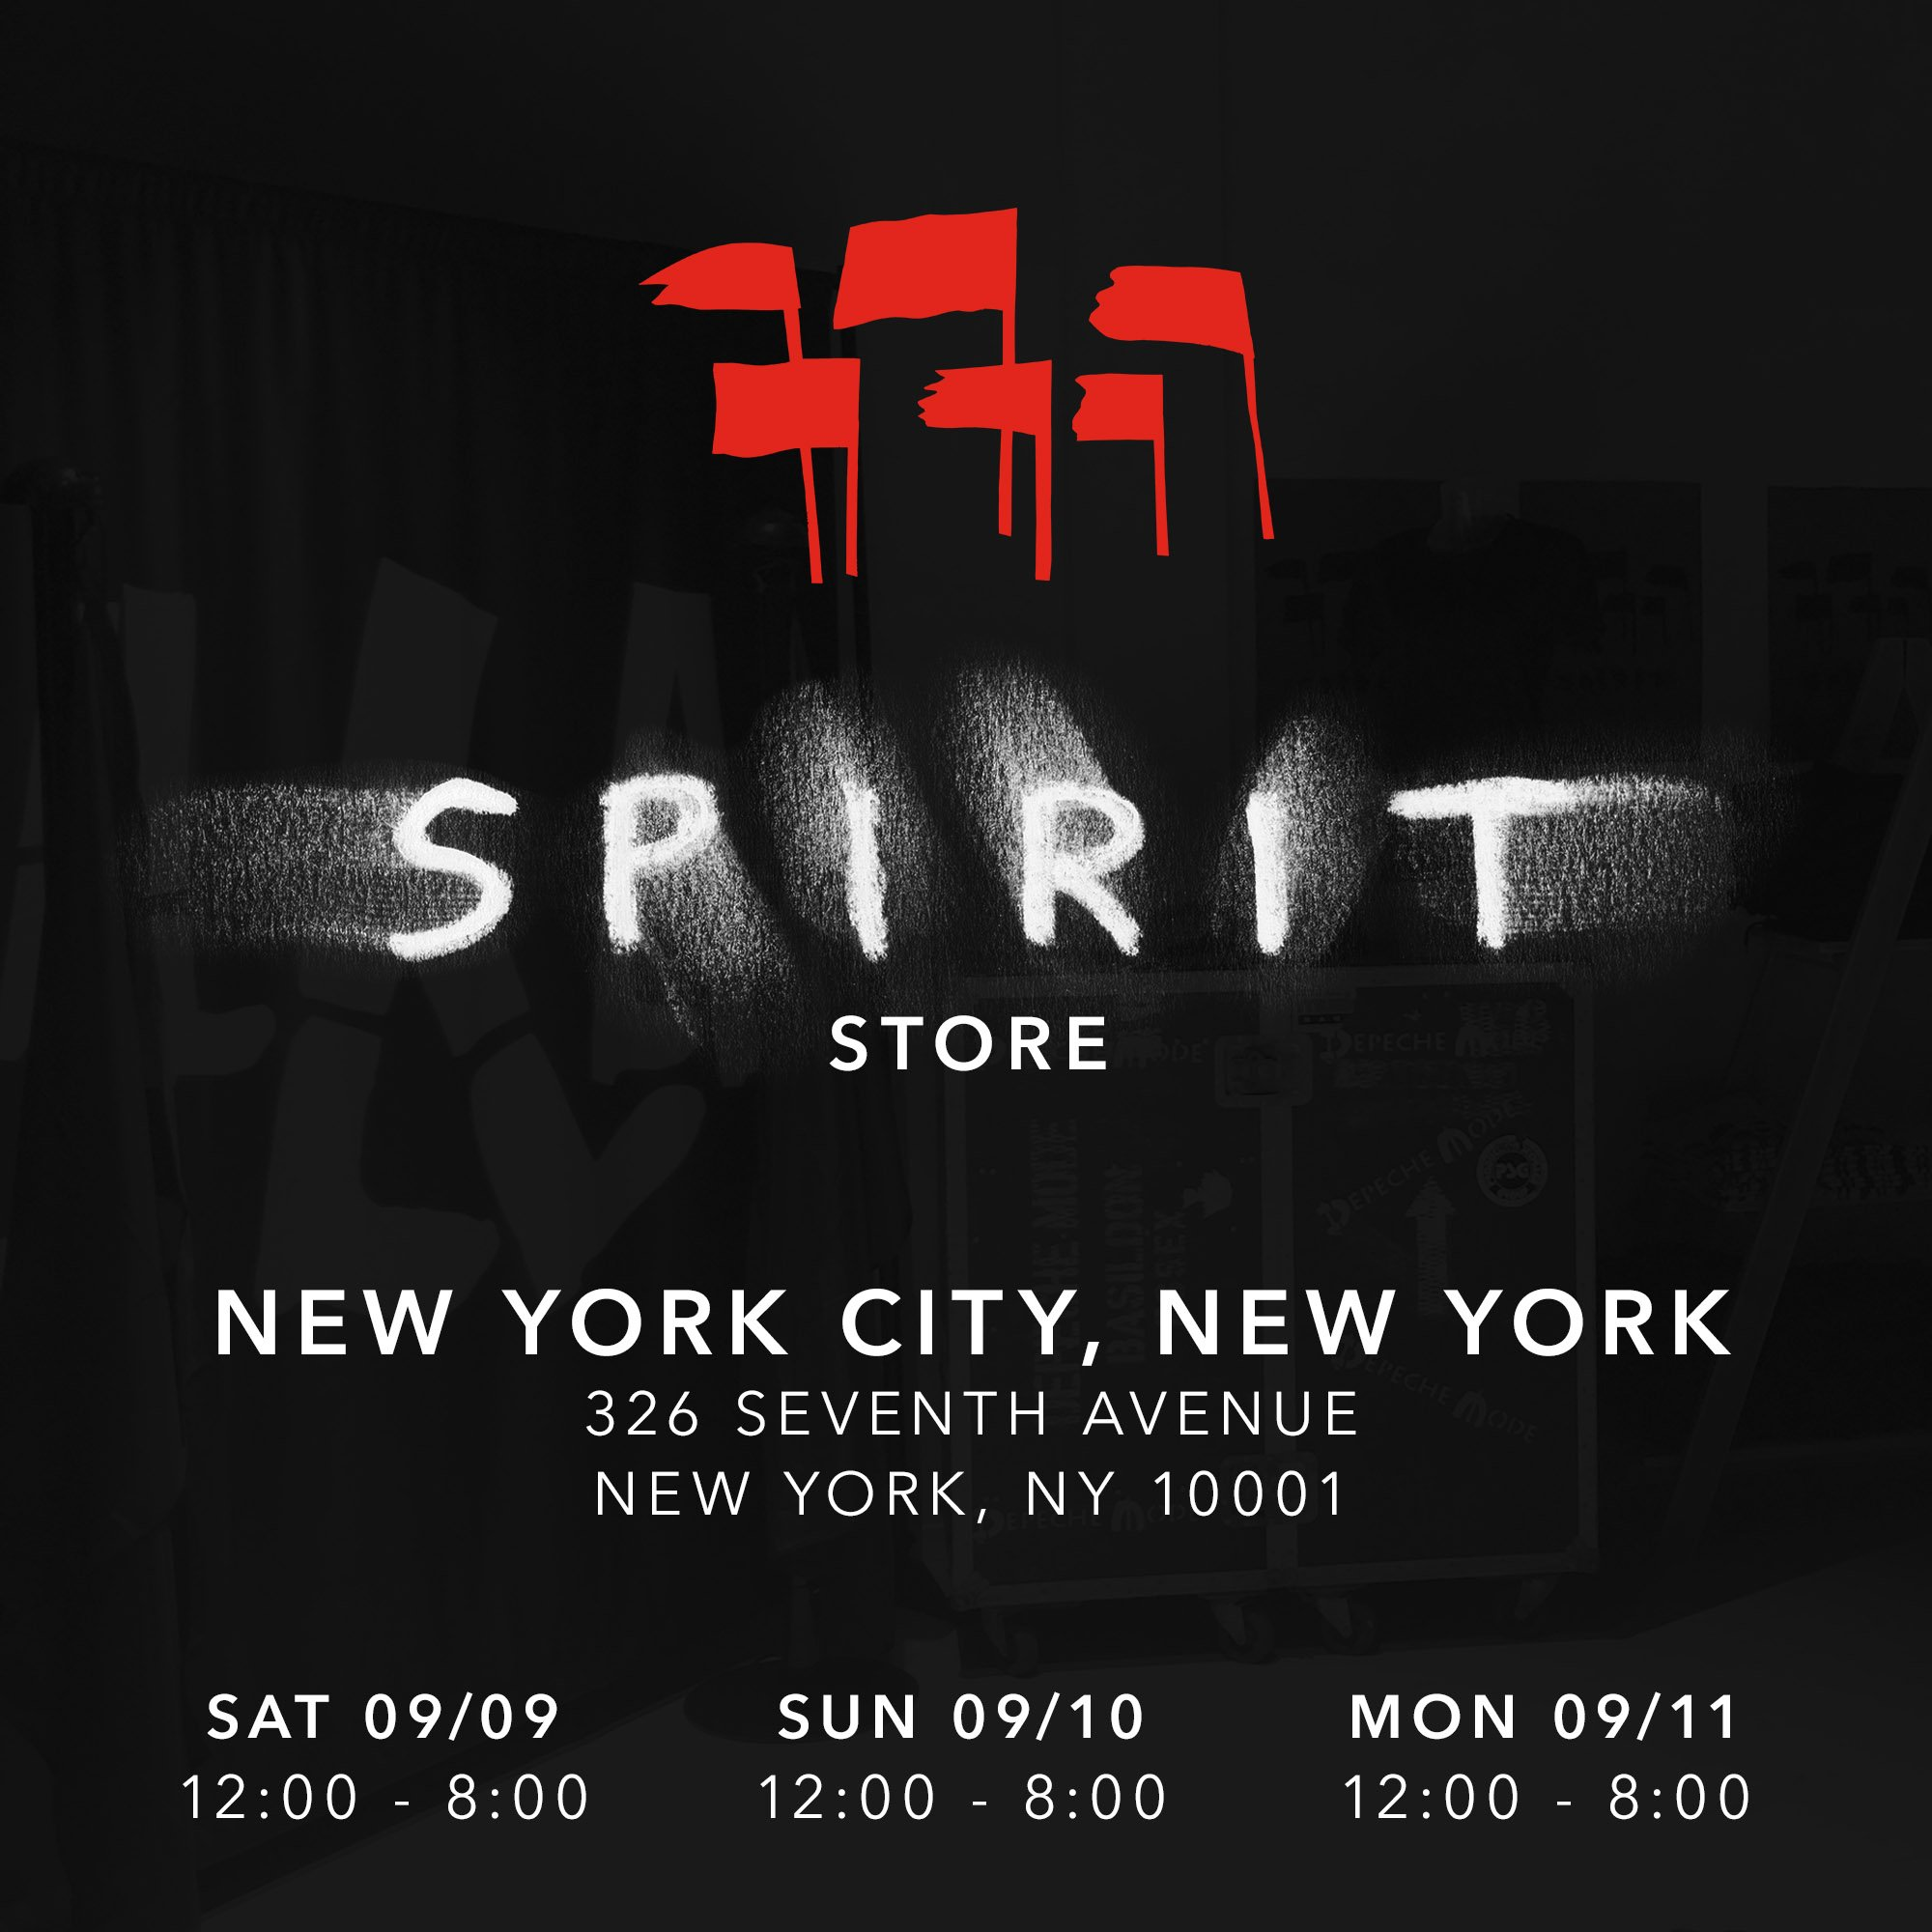 The 'Spirit' store is coming to NYC this weekend. Stay tuned for more details... https://t.co/MCpeLDcakP